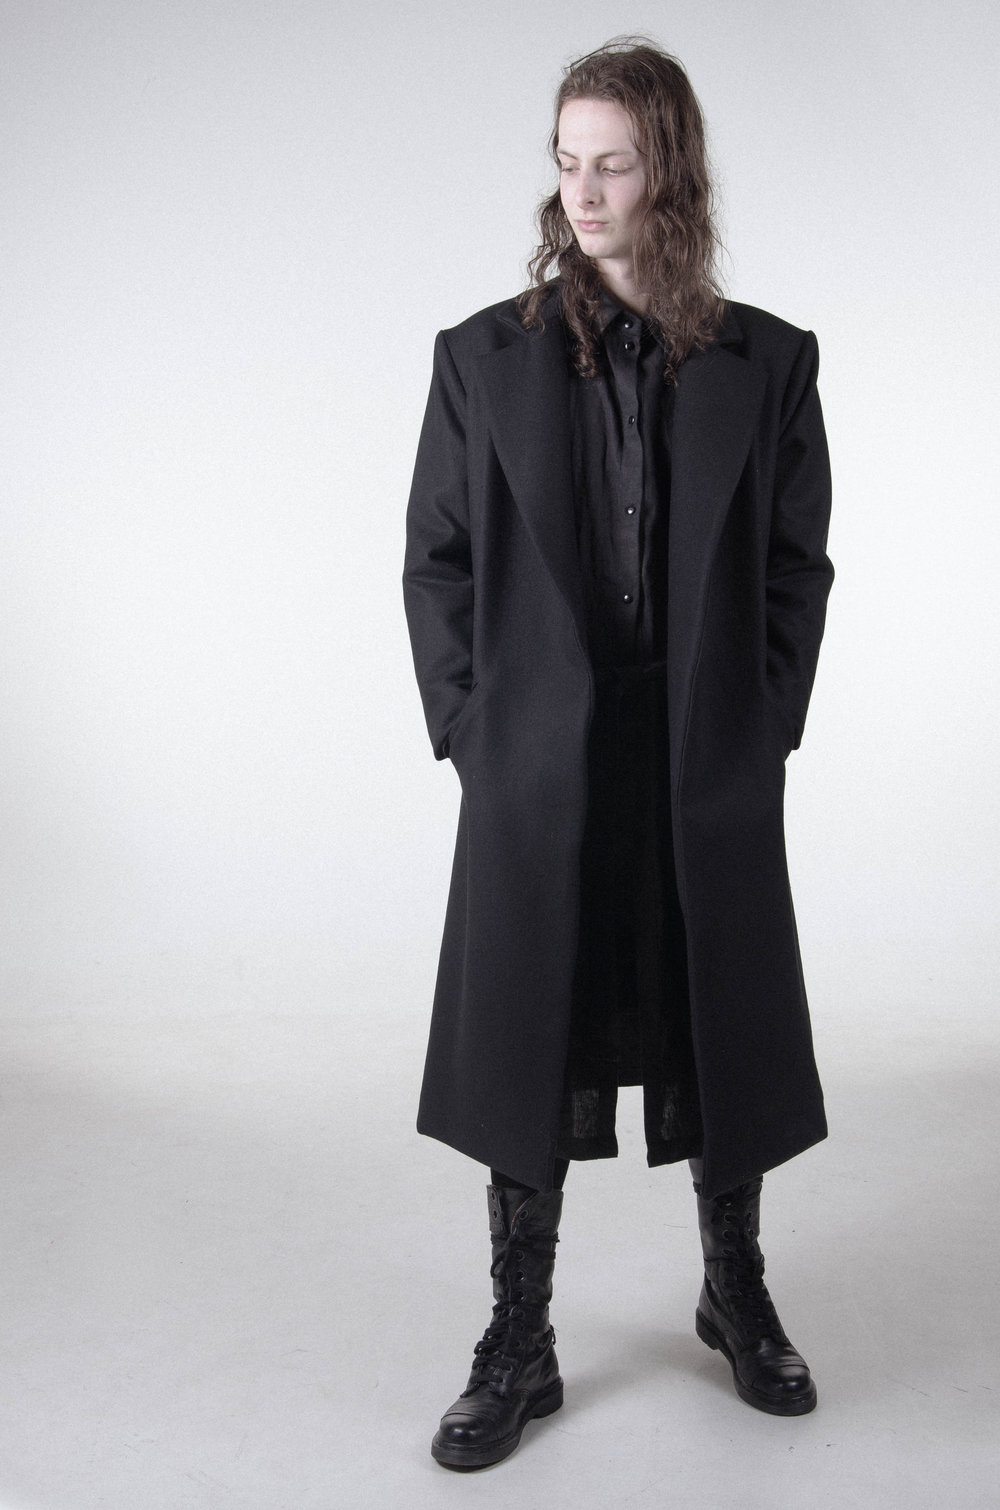 agoraphobia-collective-britt-pooley-double-breasted-bowie-coat